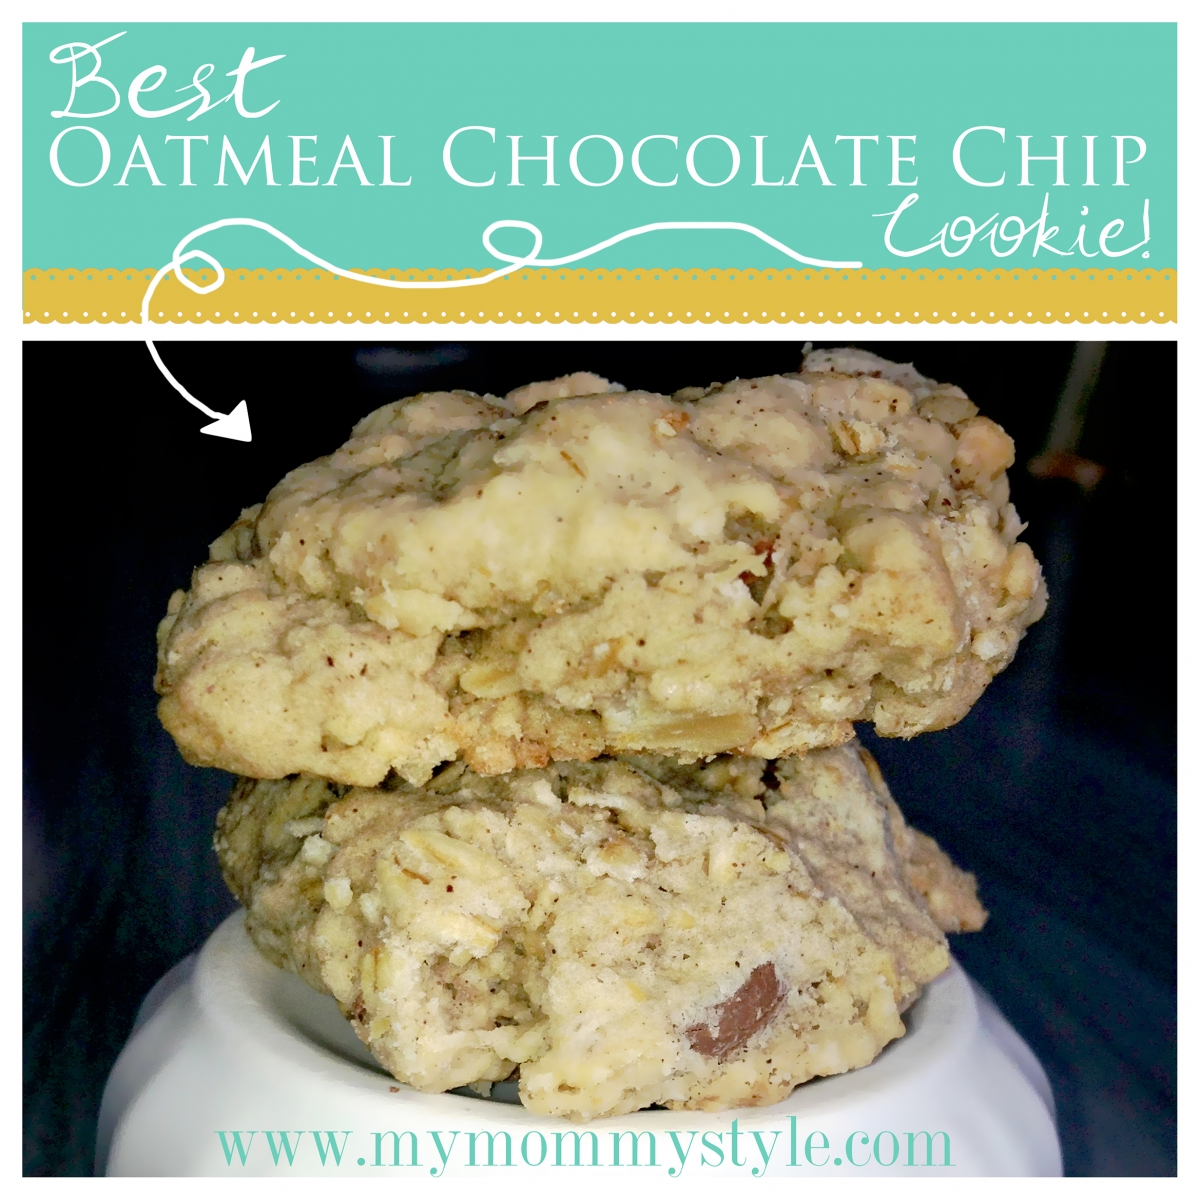 Mango Holidays For Single Parents: Oatmeal Chocolate Chip Cookies